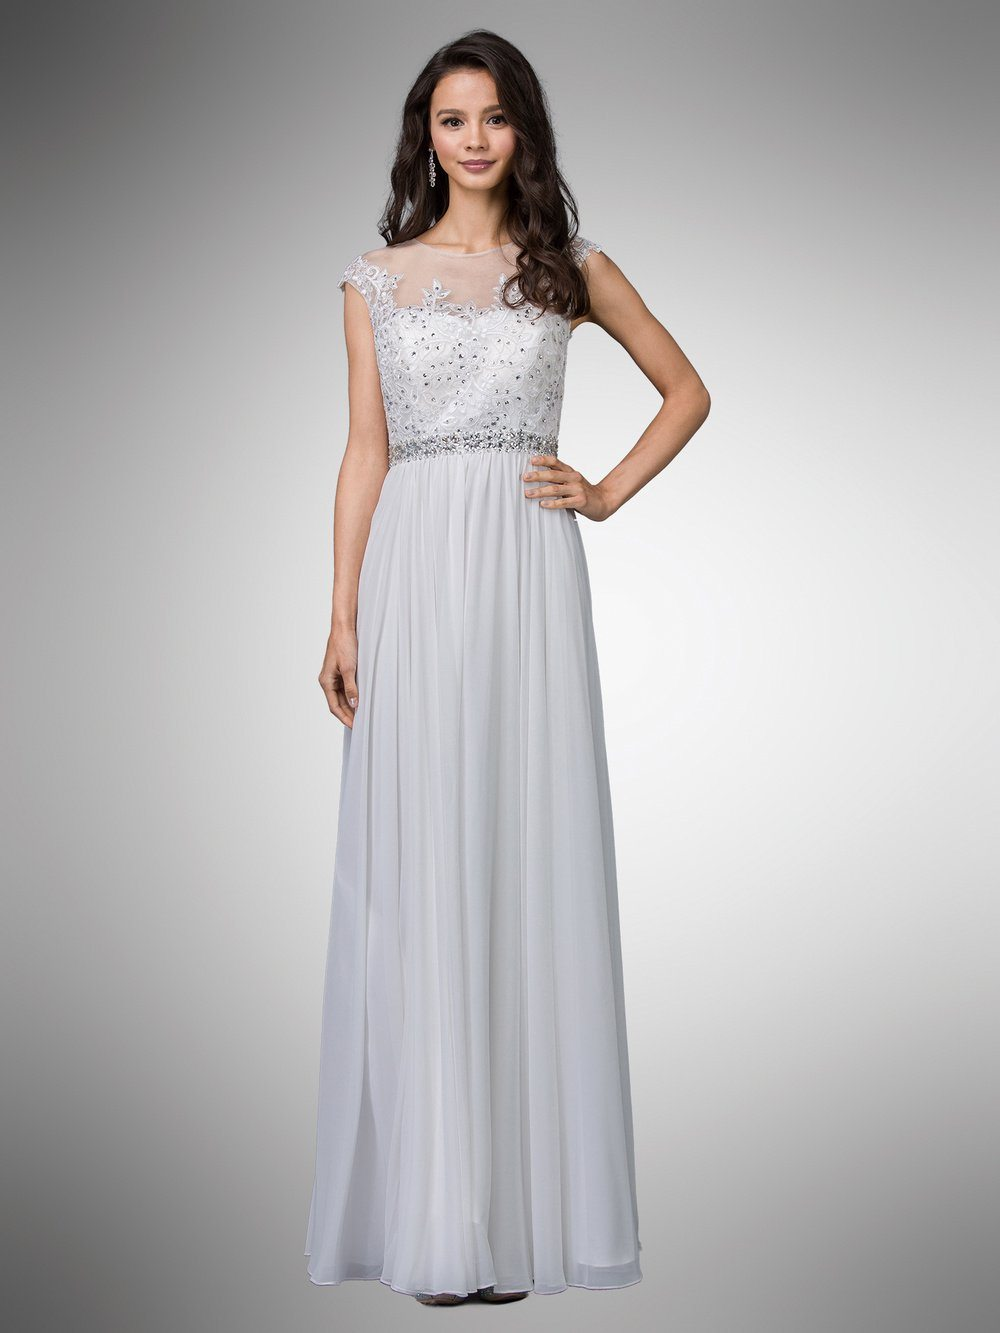 Chiffon beach wedding dress #Dq9400-Simply Fab Dress